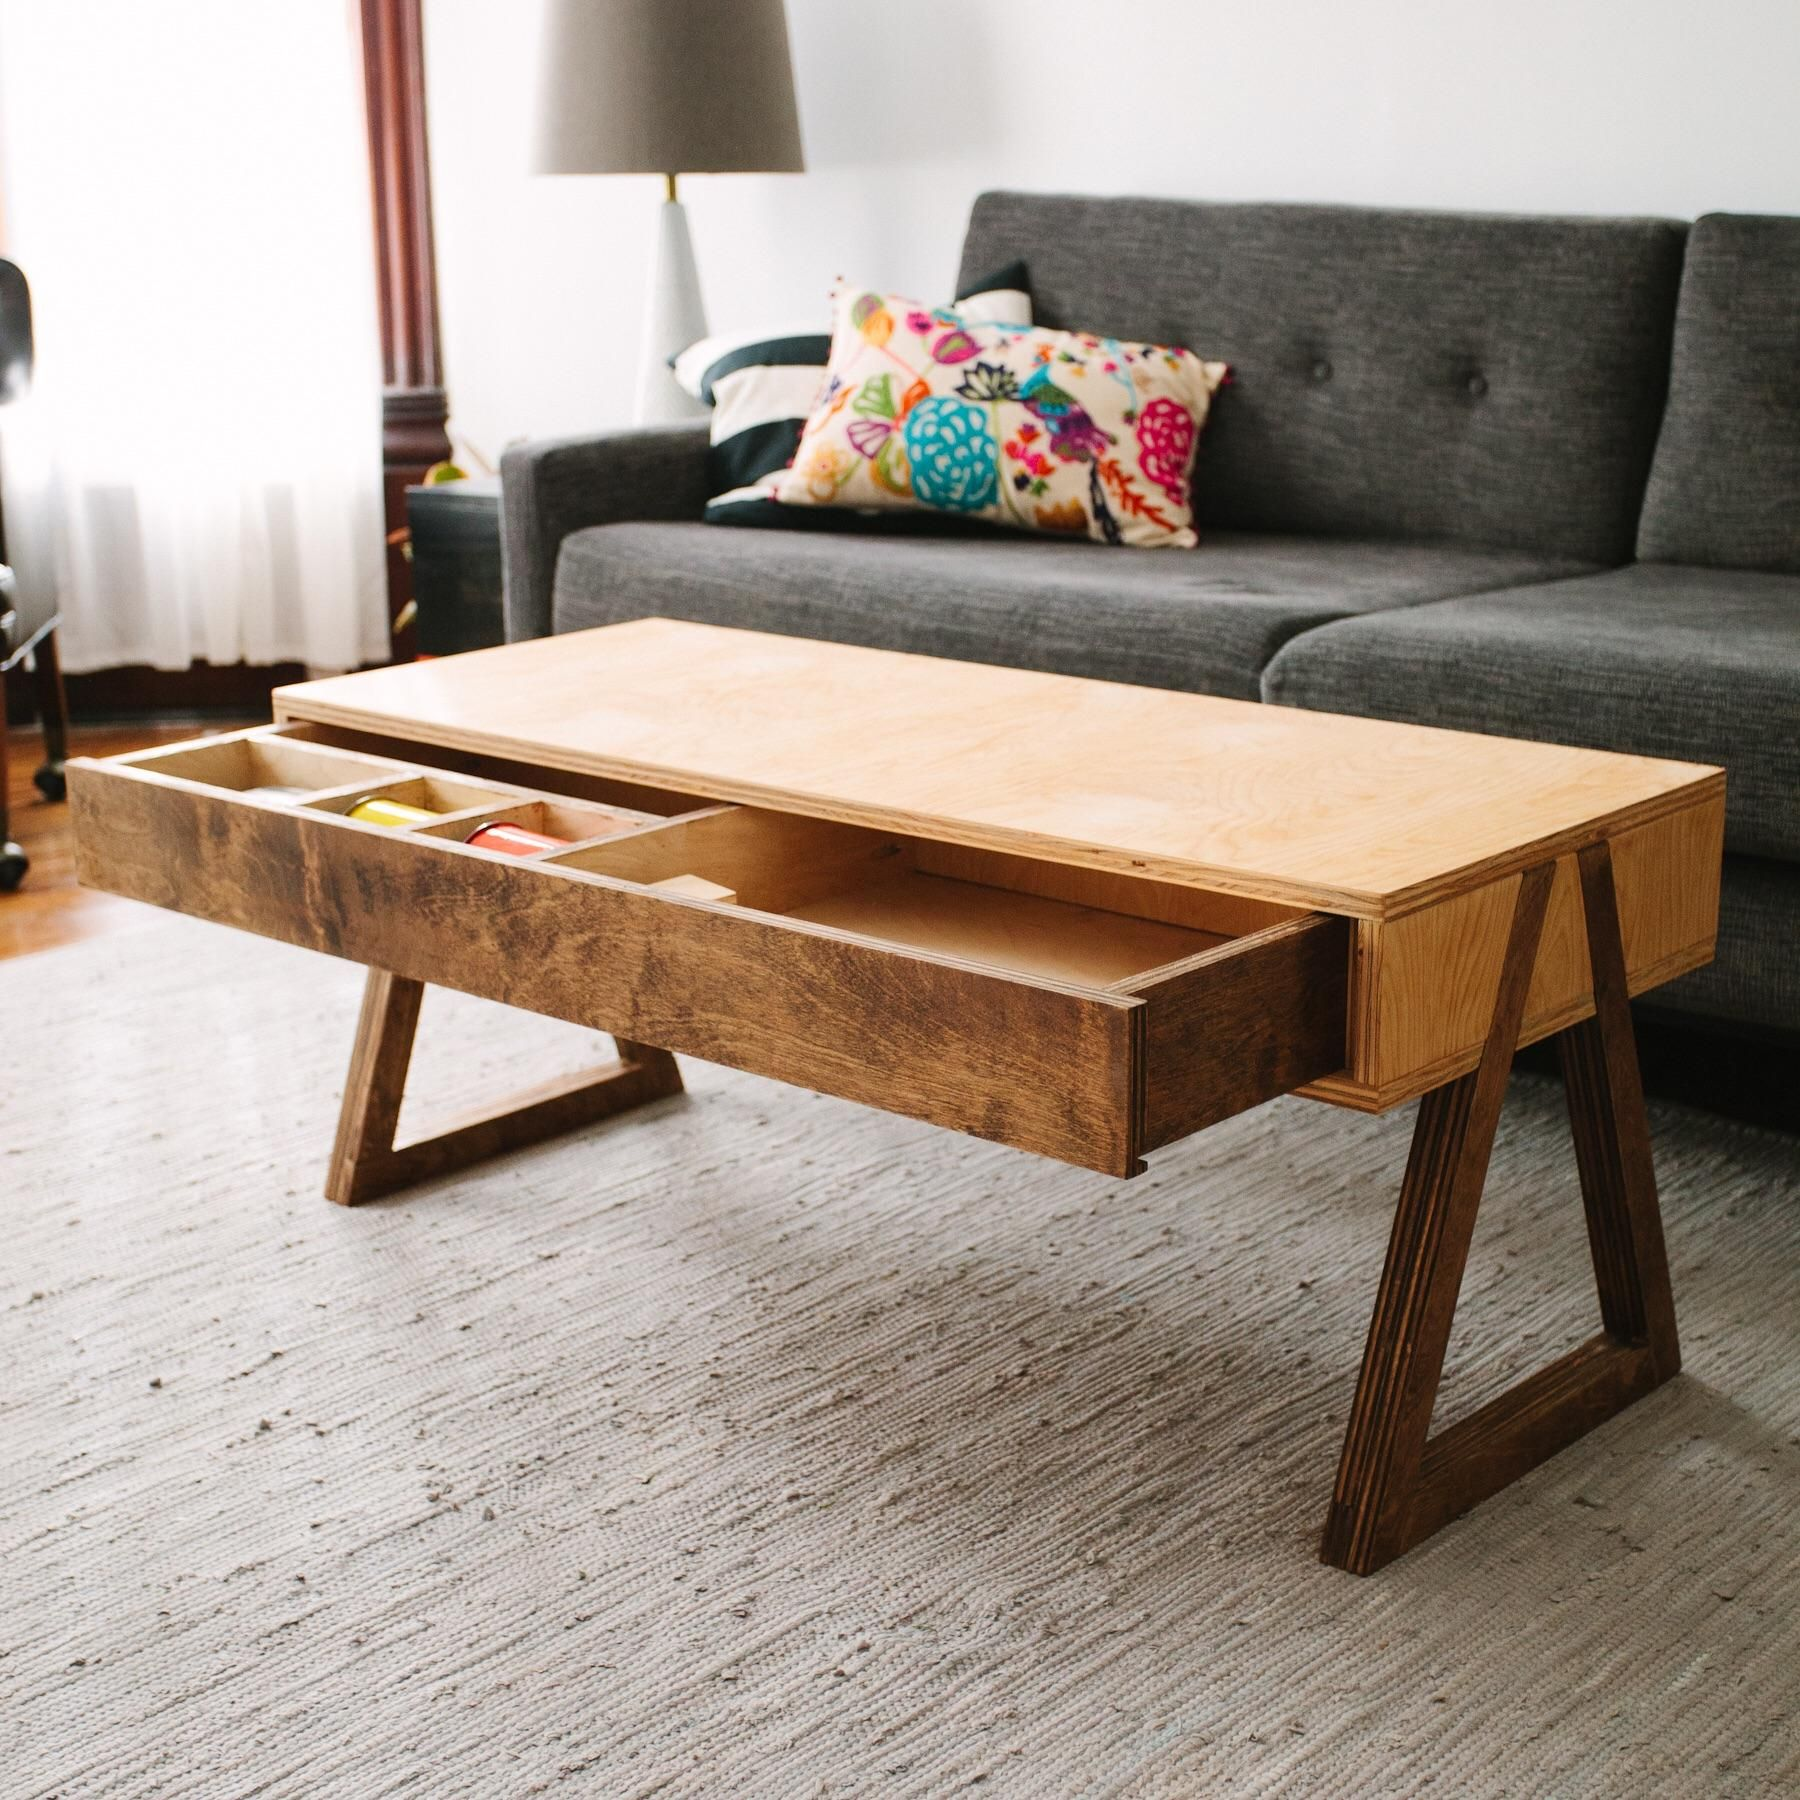 Coffee Table Made From A Sheet Of Plywood Http Ift Tt 2xevnzy